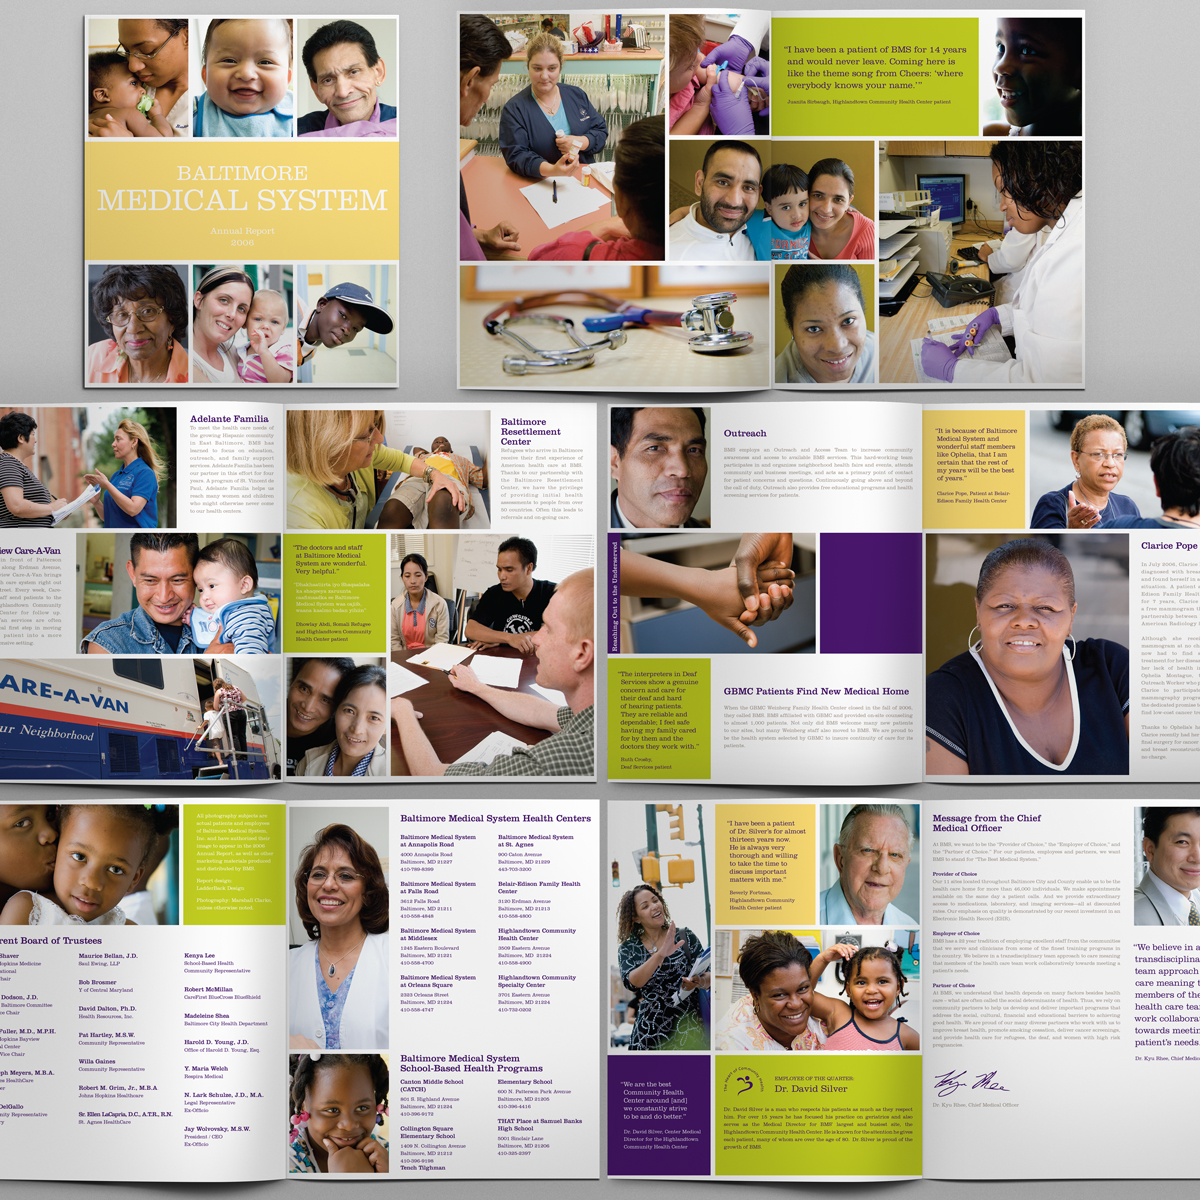 Annual Report for Baltimore Medical System